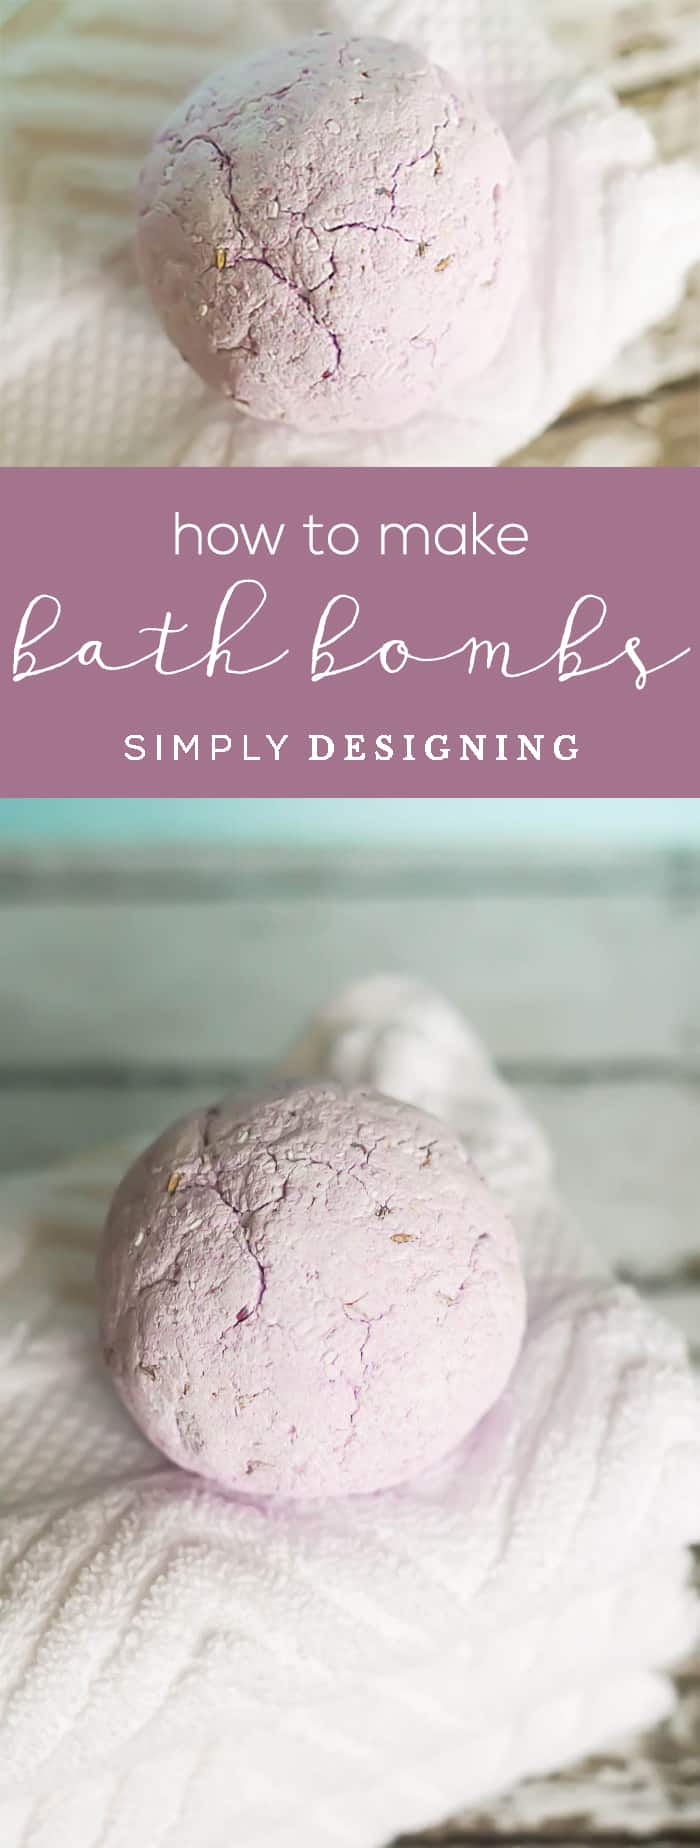 How to Make Bath Bombs - DIY Bath Bombs - Bath Bomb Recipe